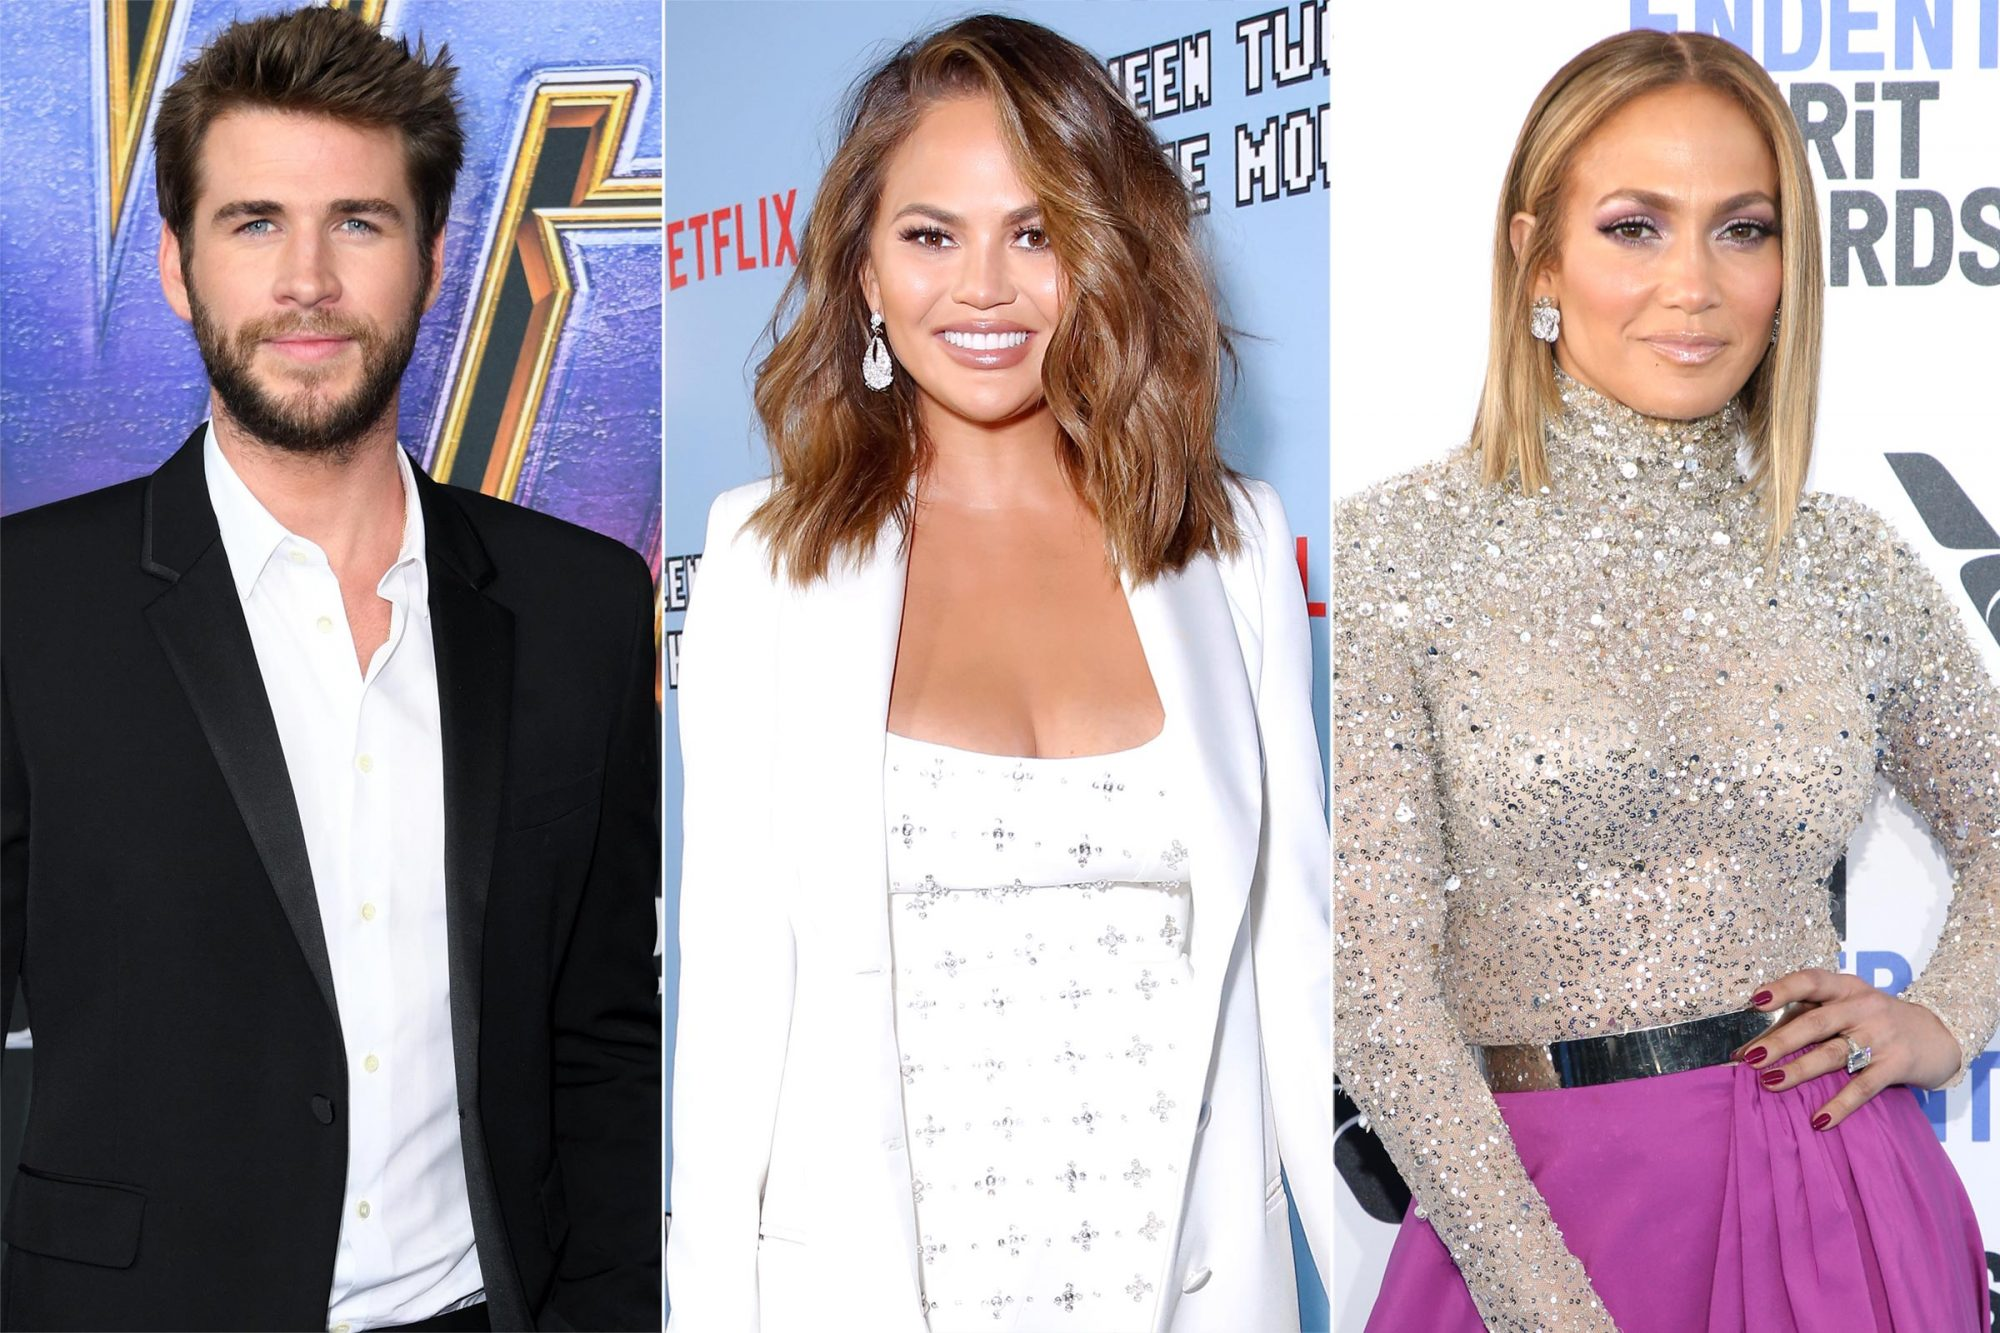 Liam Hemsworth, Chrissy Teigen, Jennifer Lopez